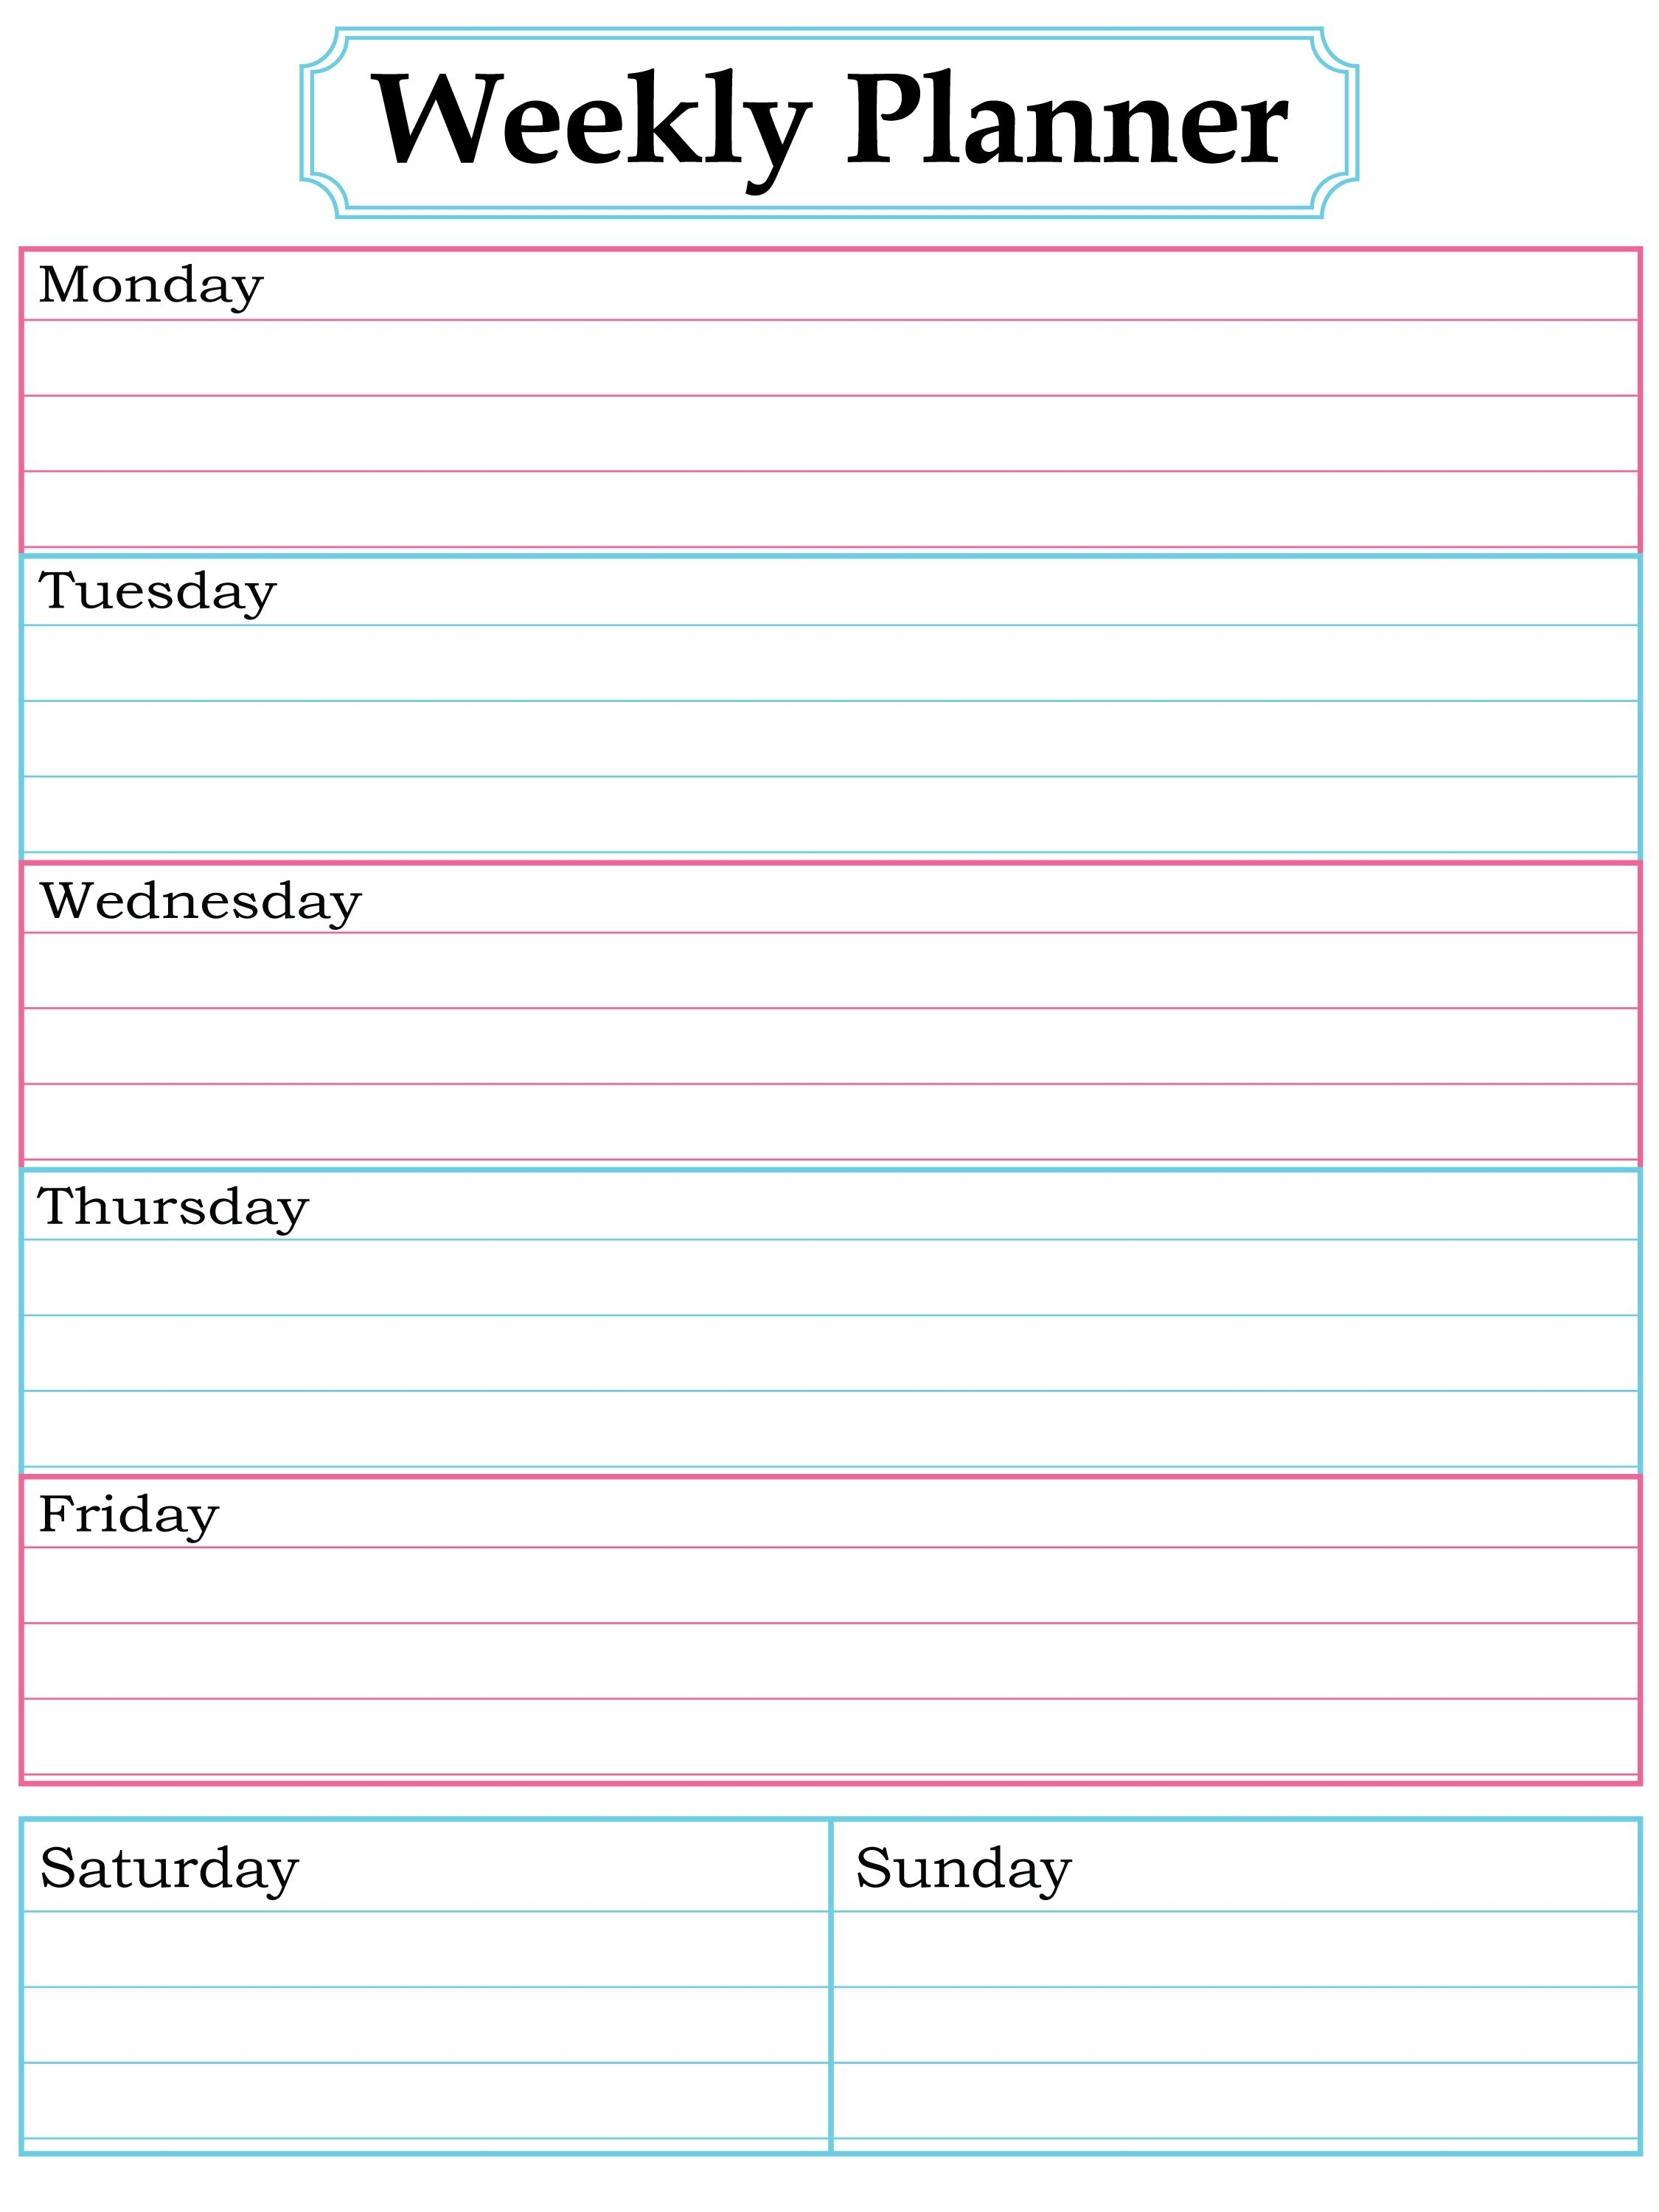 weekly planner page june 2016 pinterest weekly planner